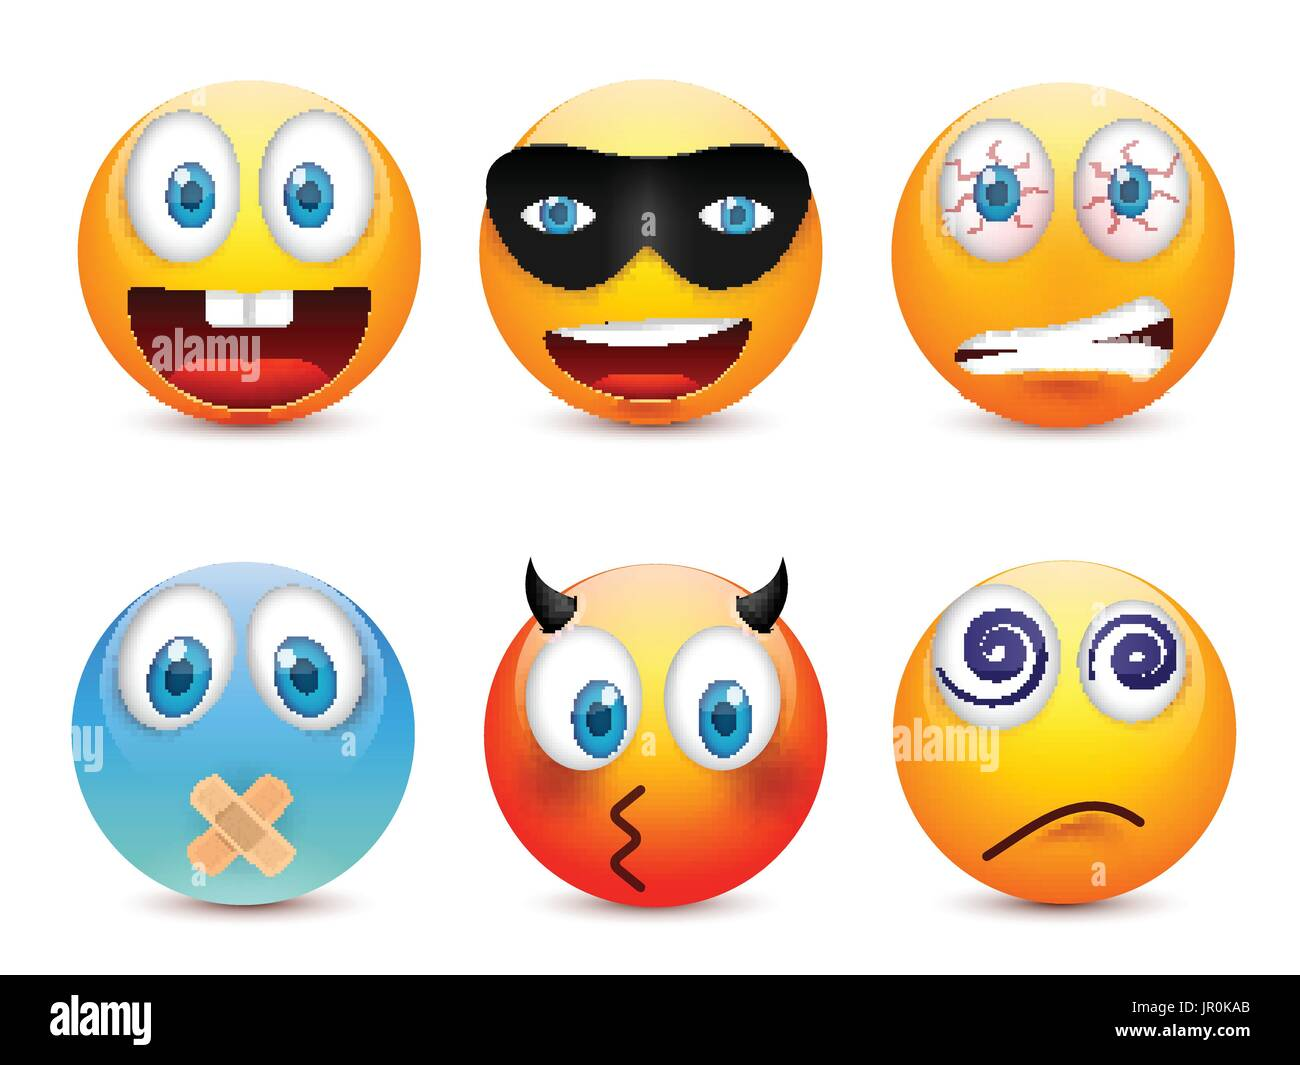 faces smileys smiley head cut out stock images & pictures - alamy